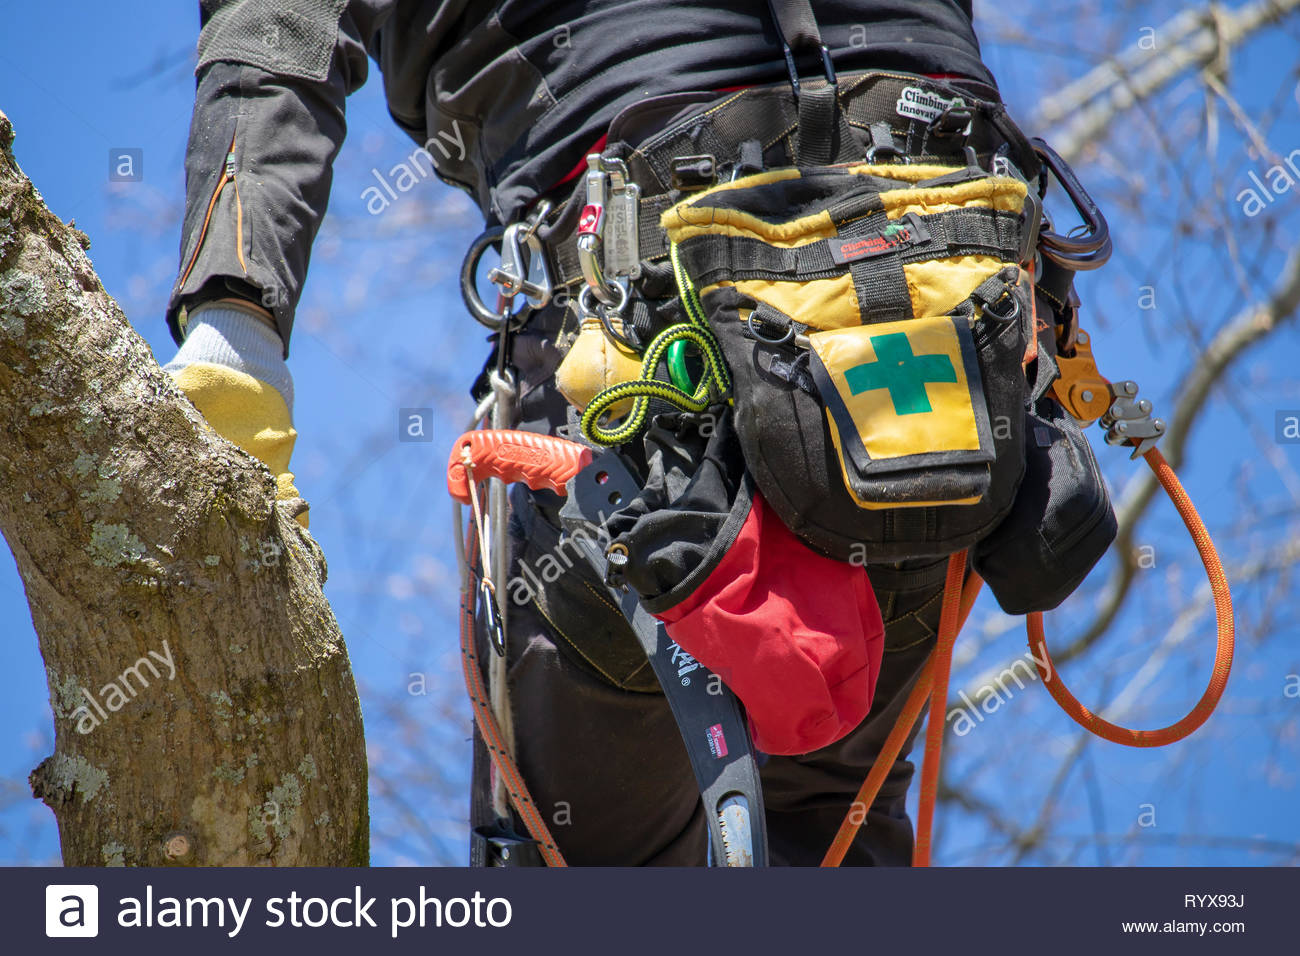 Close up of harness and gear worn by an arborist climbing a tree, torso view, from behind. - Stock Image